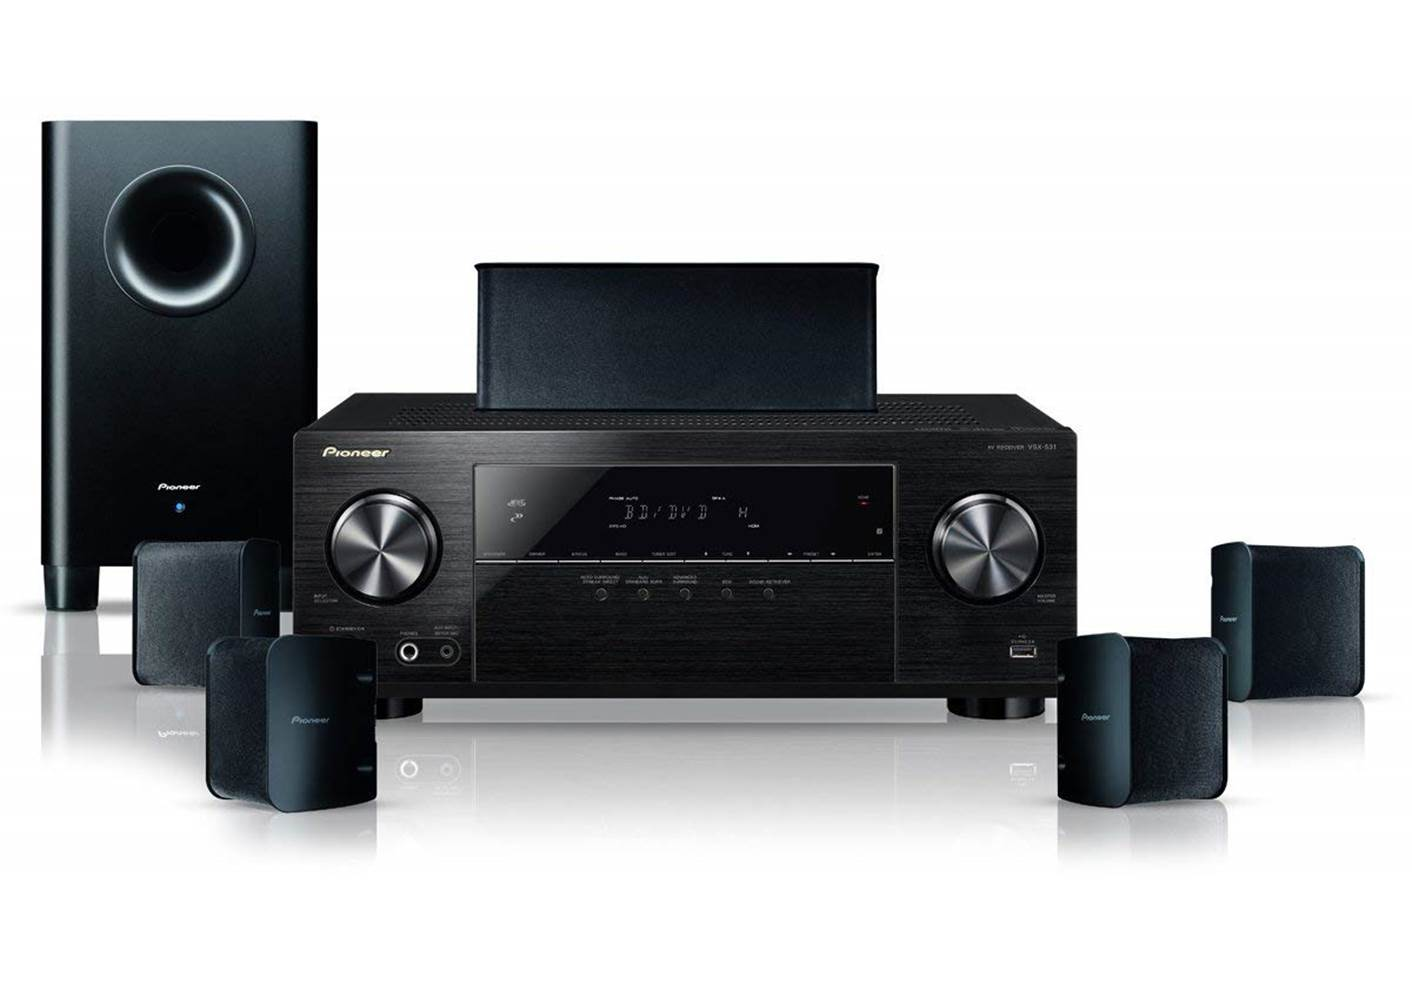 Pioneer 5.1 Home Theater in a Box System